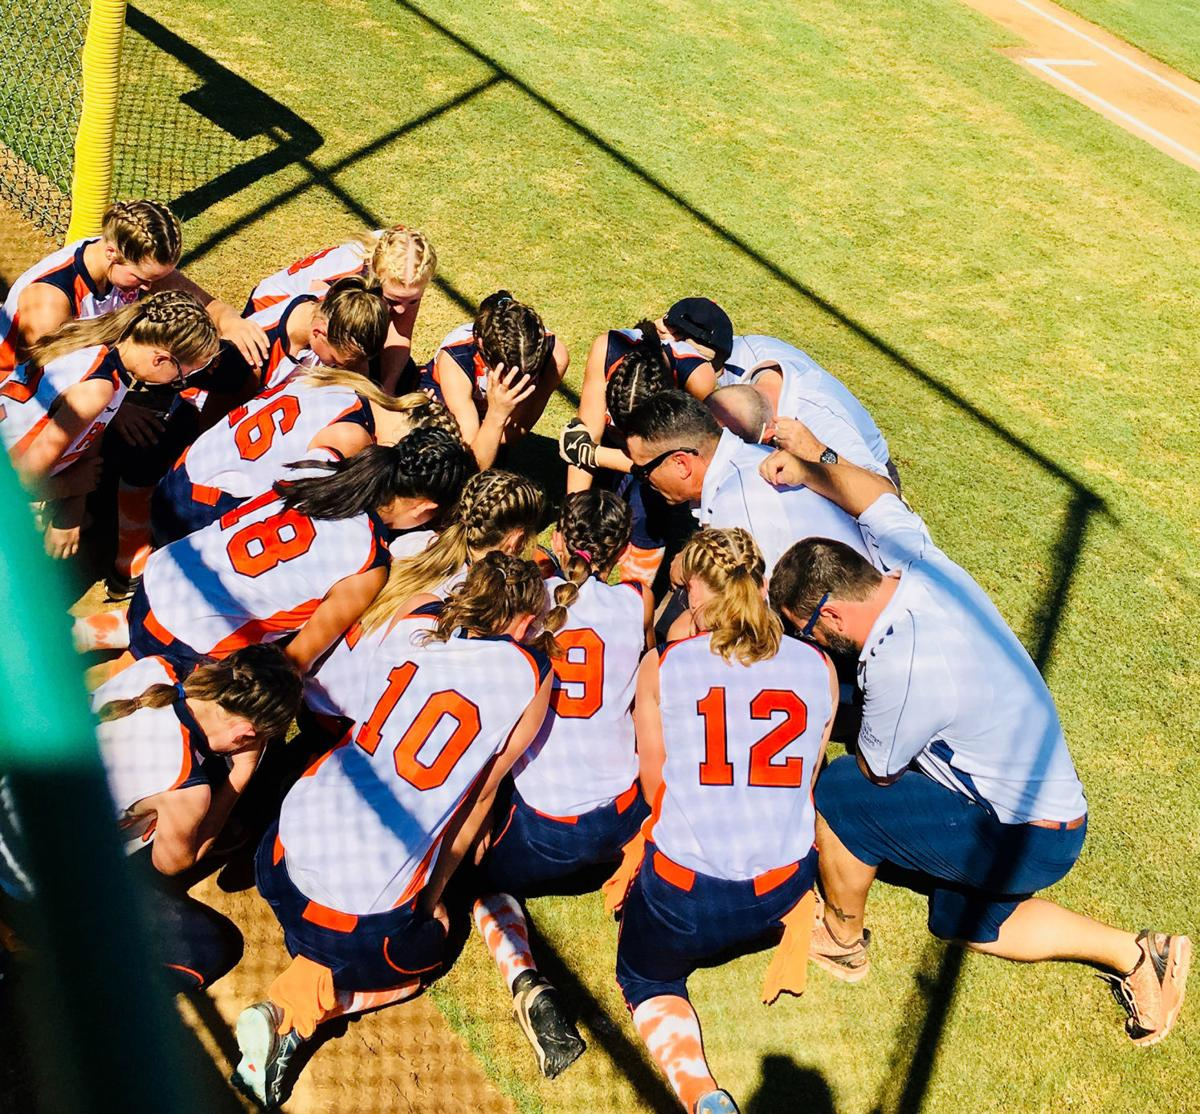 Softball Girls Little League Praying For a Victory